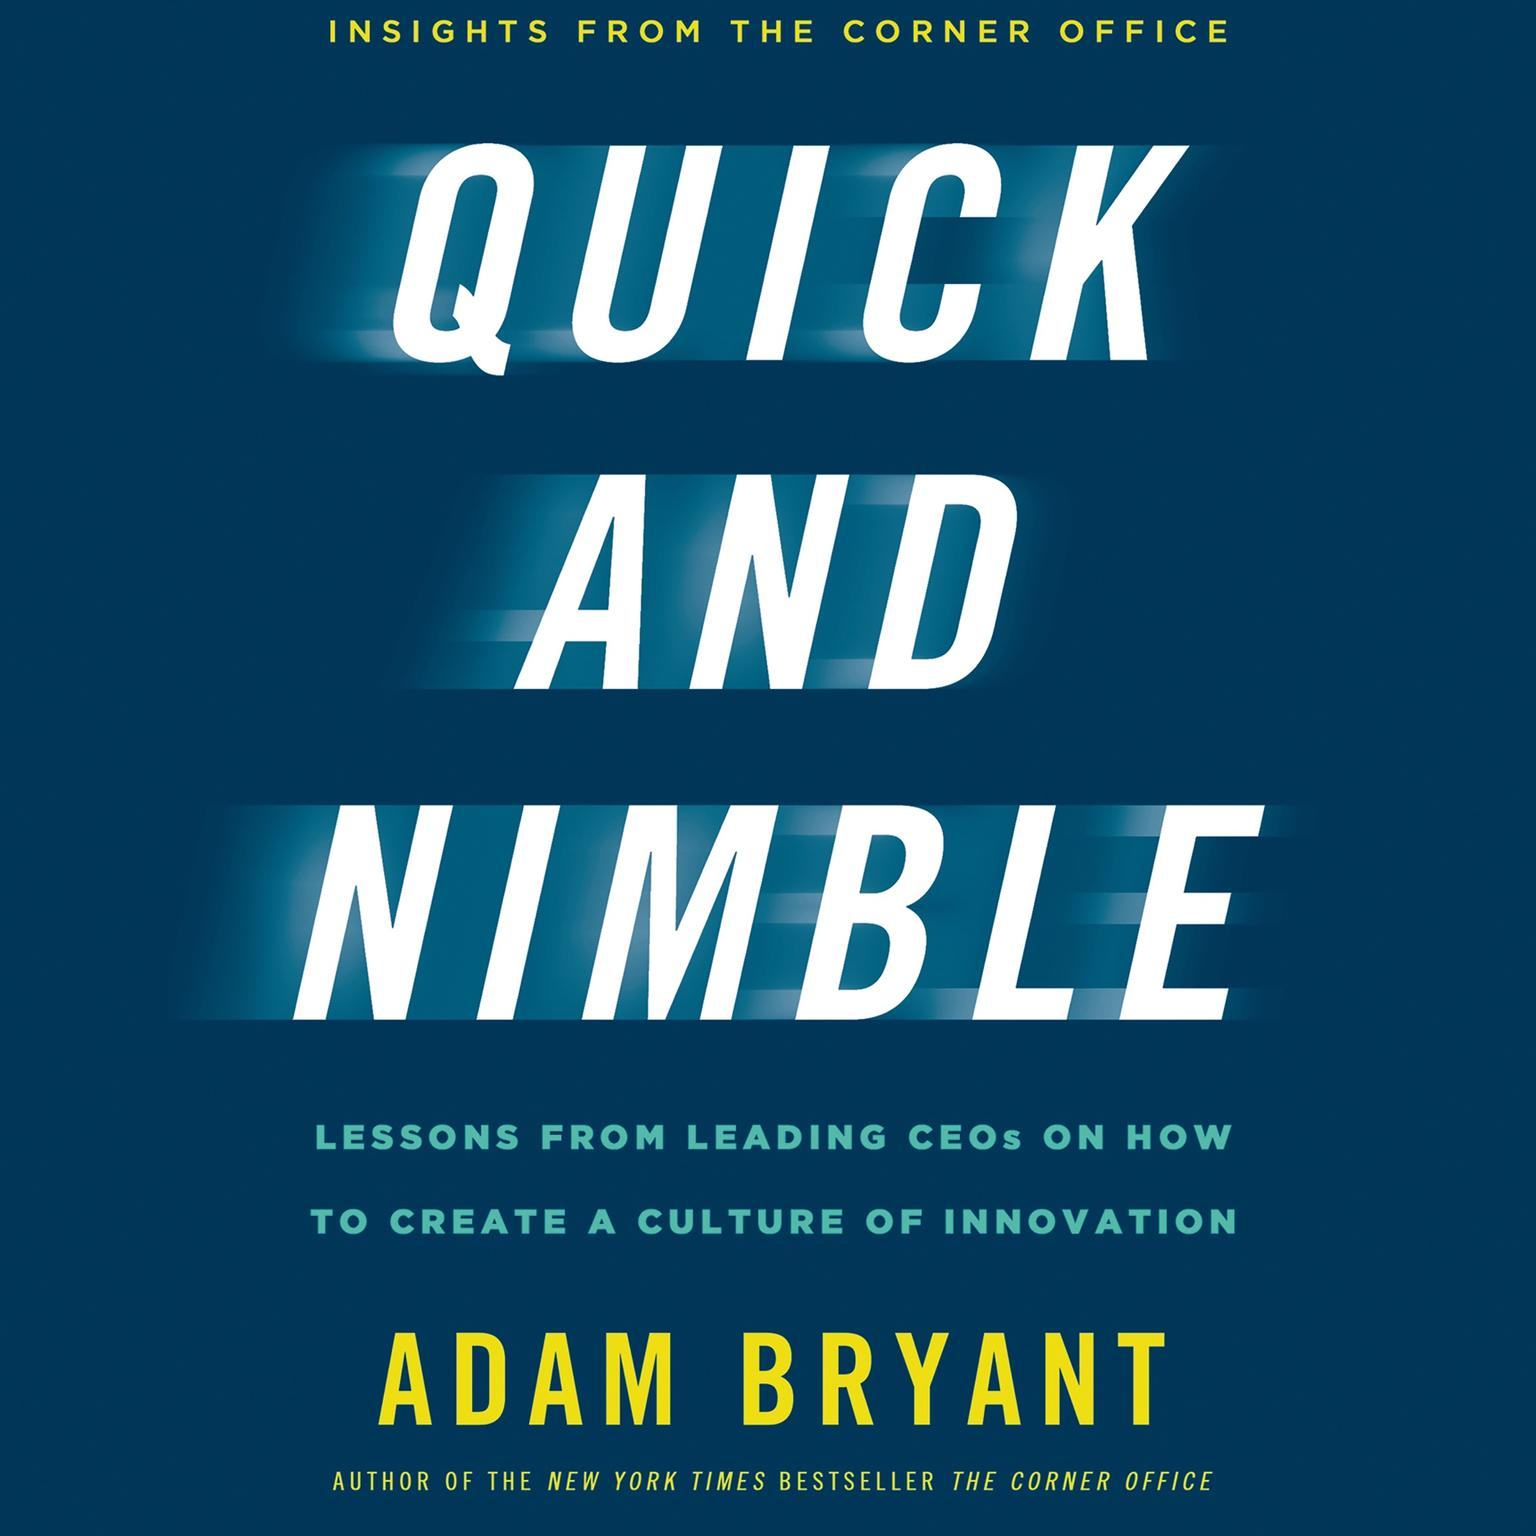 Printable Quick and Nimble: Lessons from Leading CEOs on How to Create a Culture of Innovation - Insights from The Corner Office Audiobook Cover Art